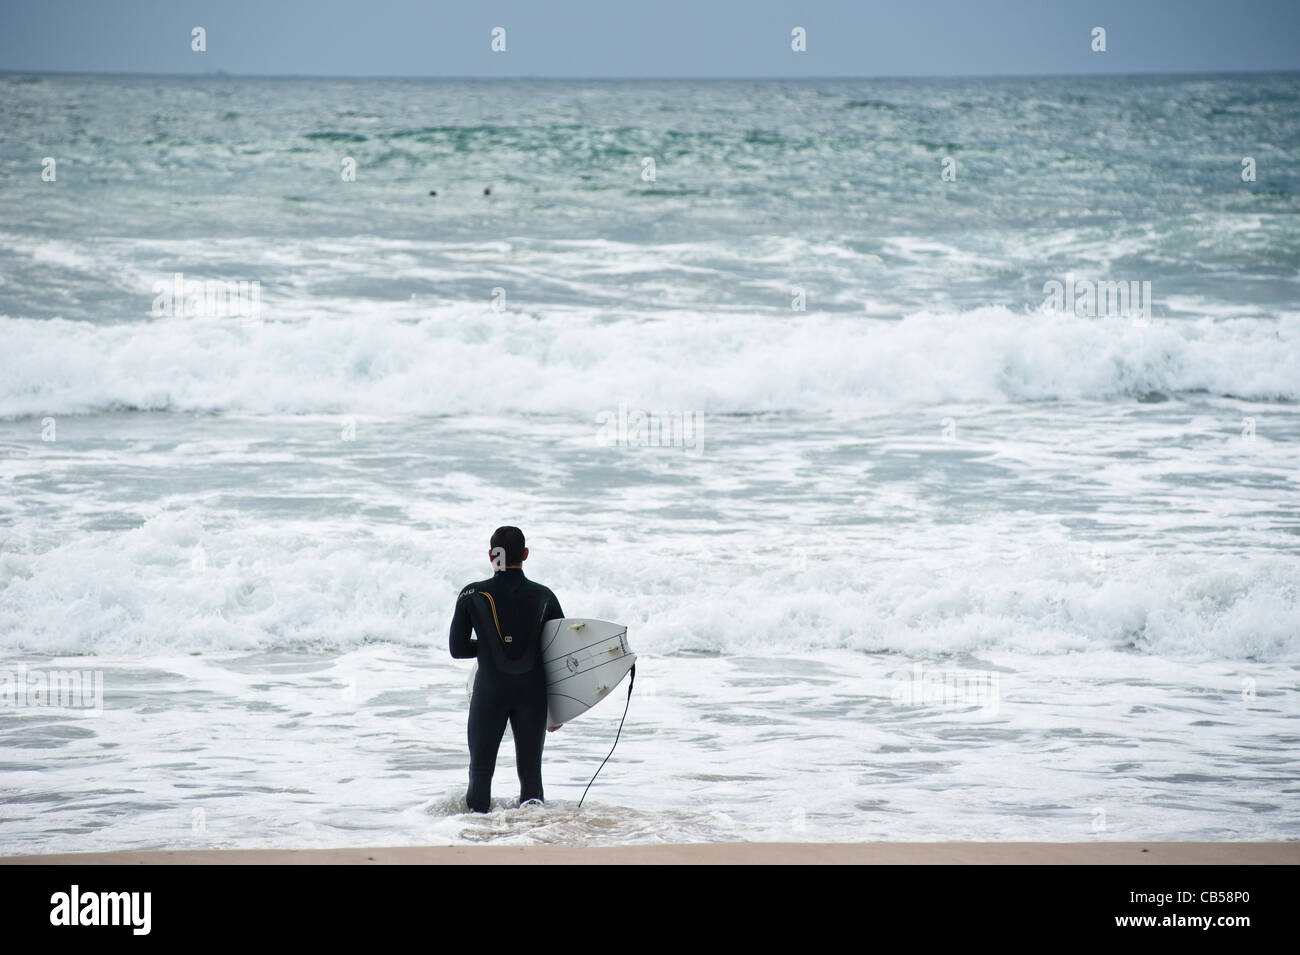 Surfer observing the waves before going into the water, Tarifa, Andalusia, Spain - Stock Image